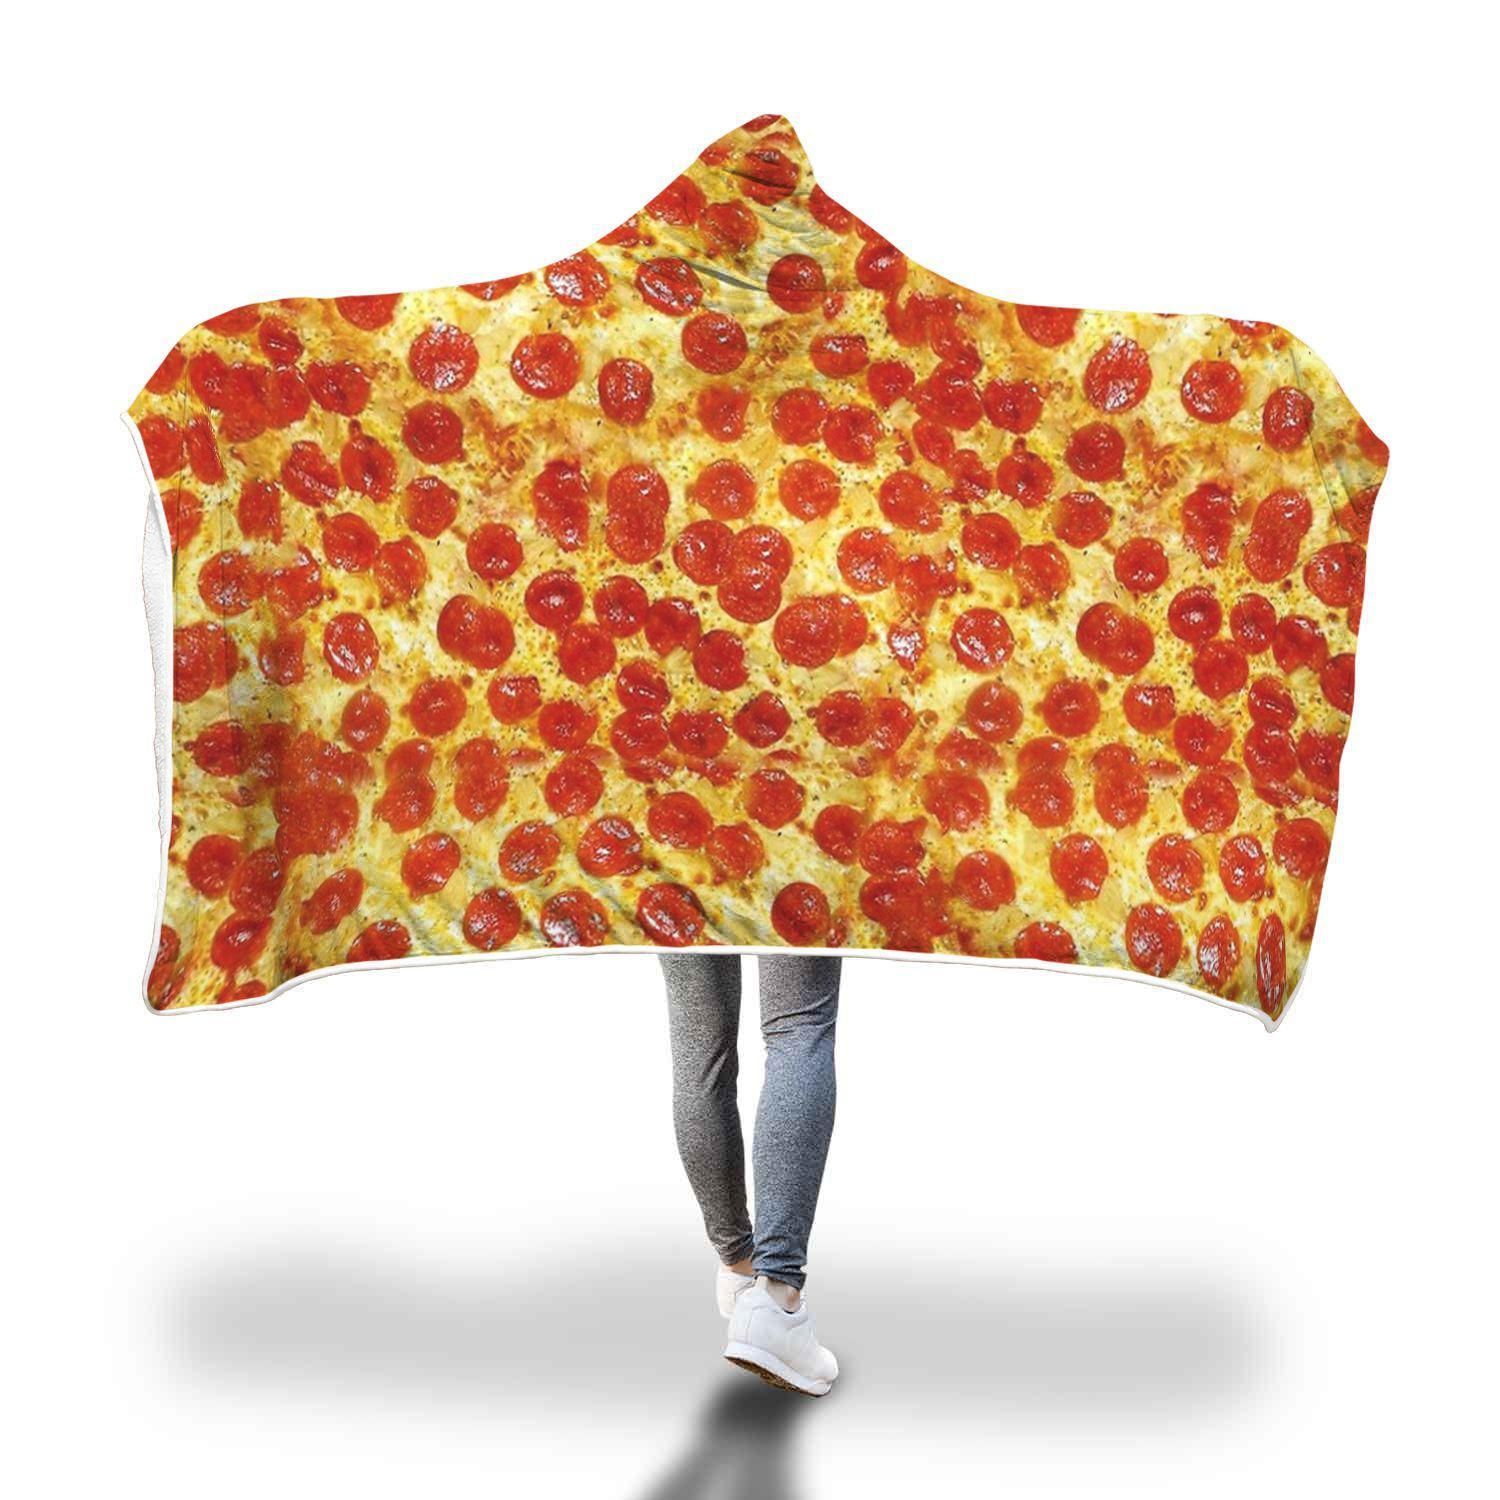 Hooded Pizza Blanket for the pizza lover